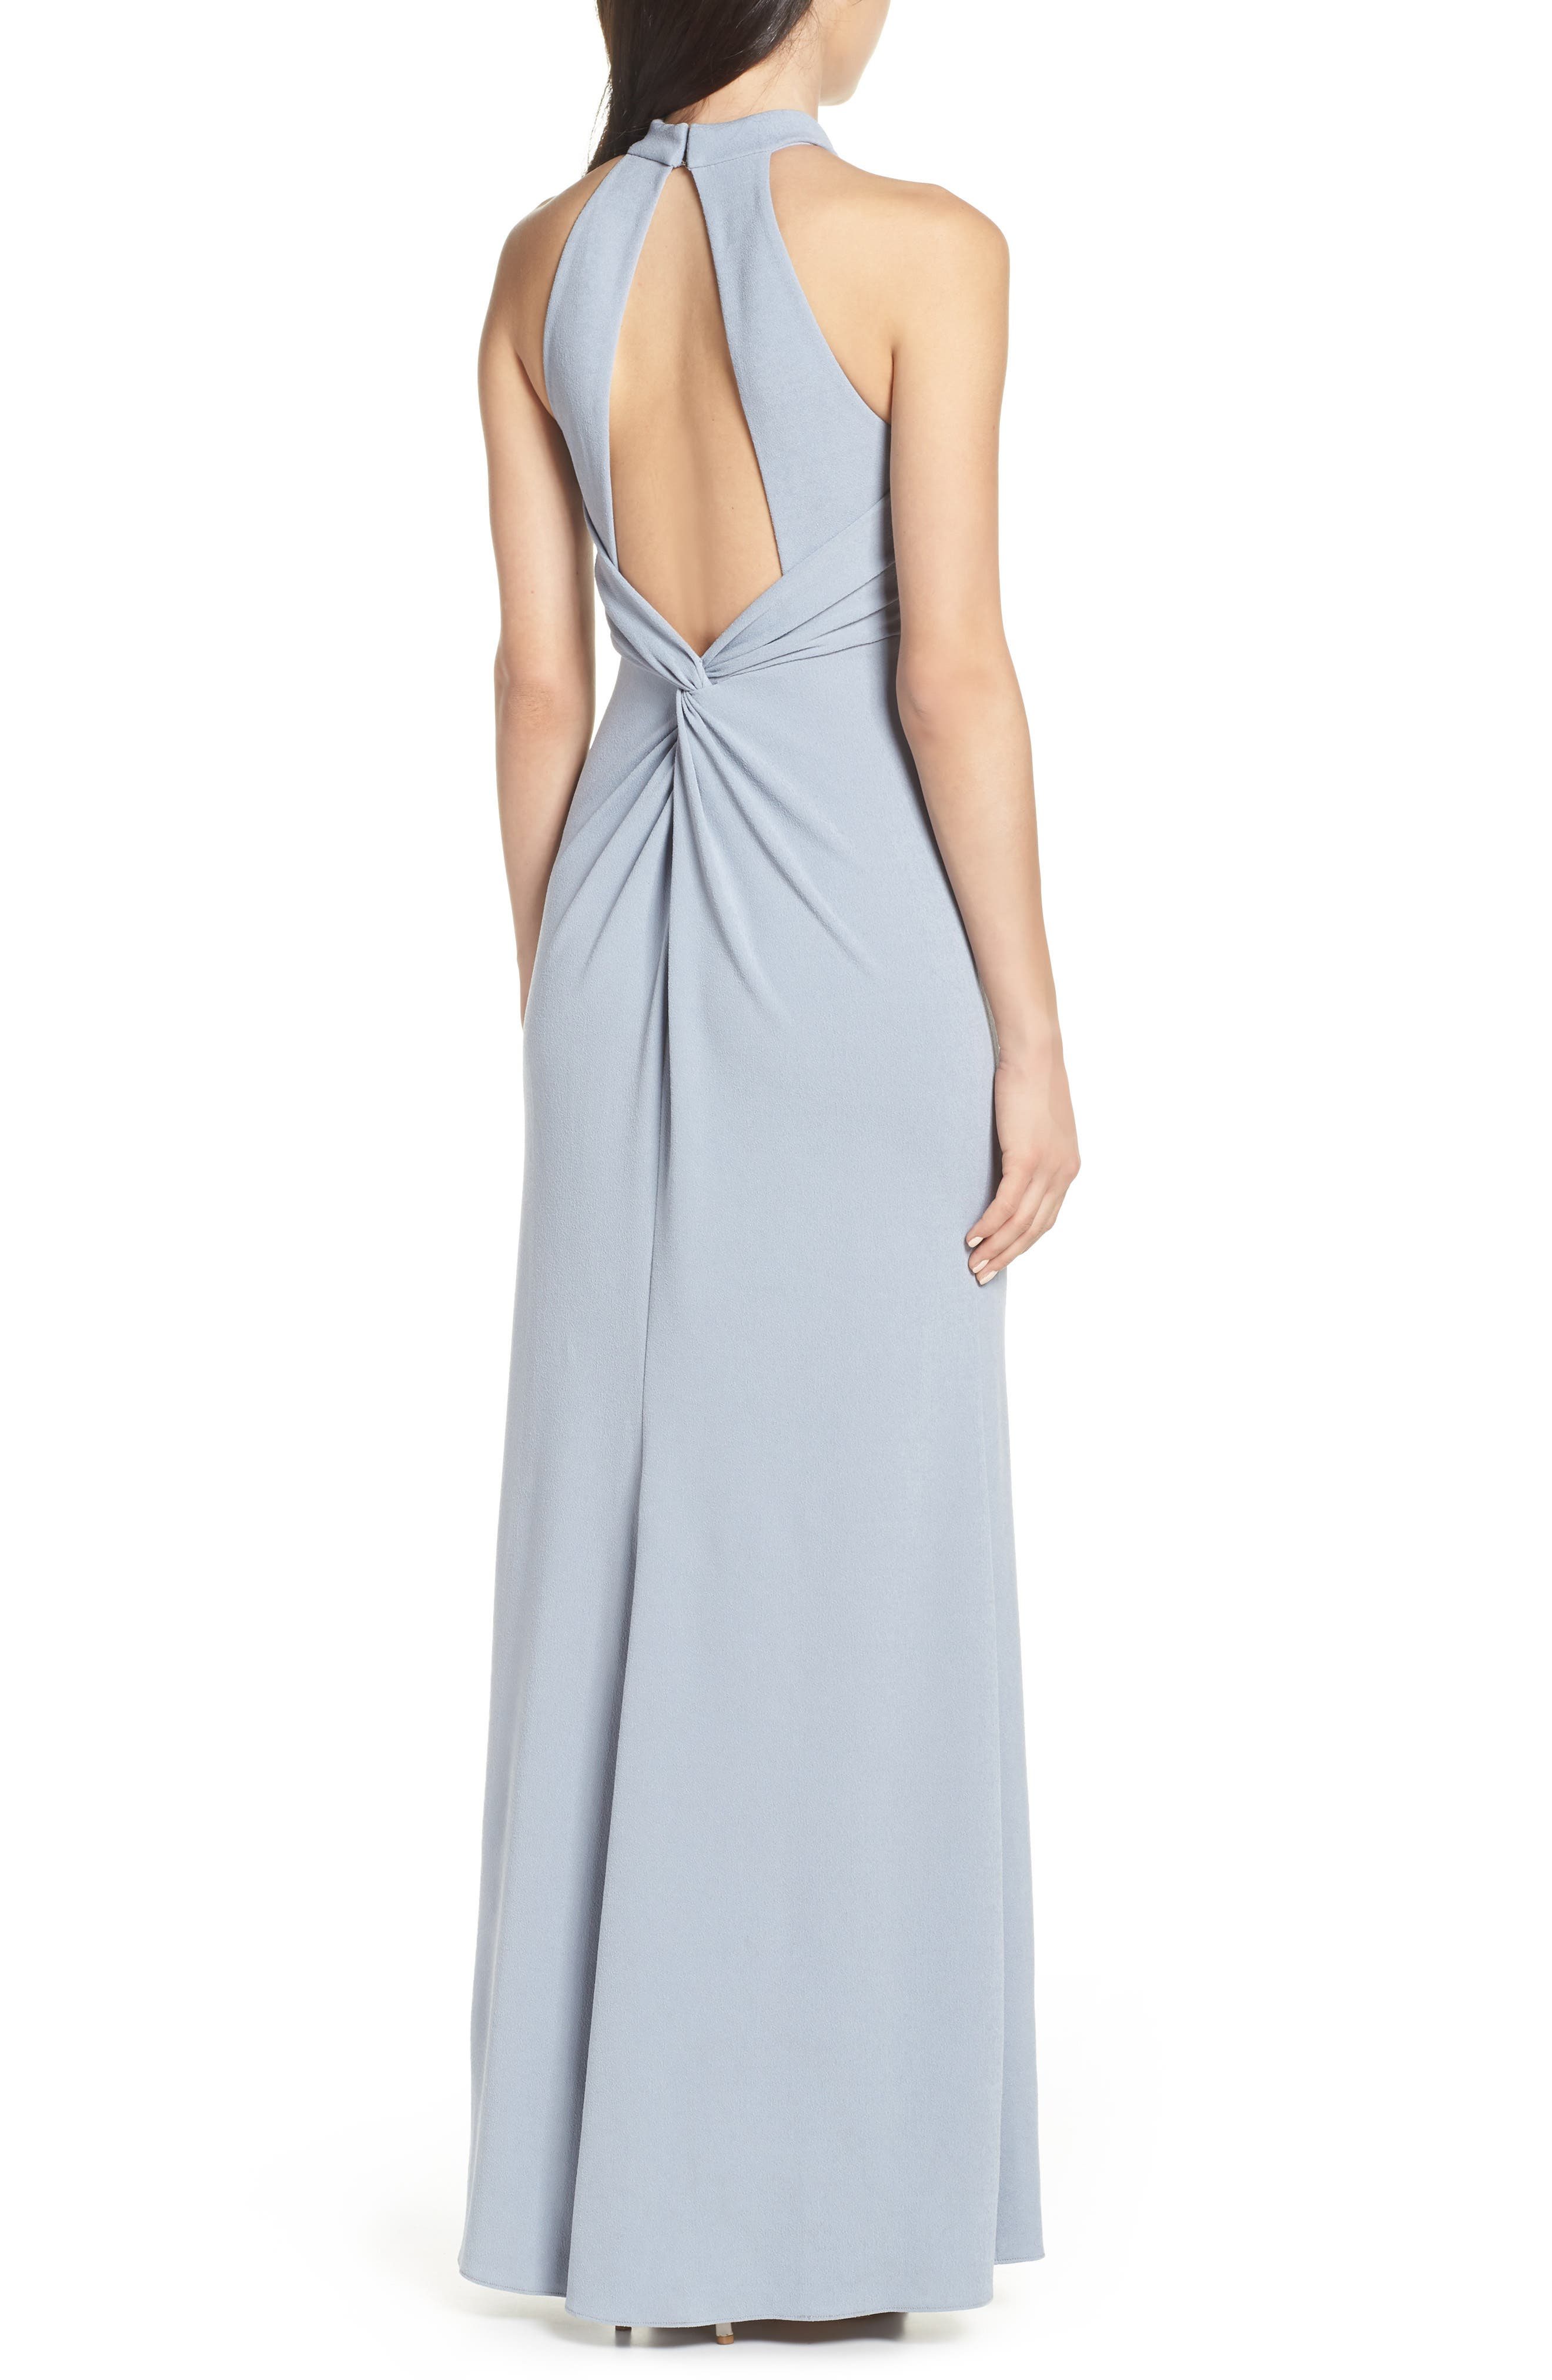 AFTER SIX, Halter Neck Stretch Crepe Evening Dress, Alternate thumbnail 2, color, PLATINUM